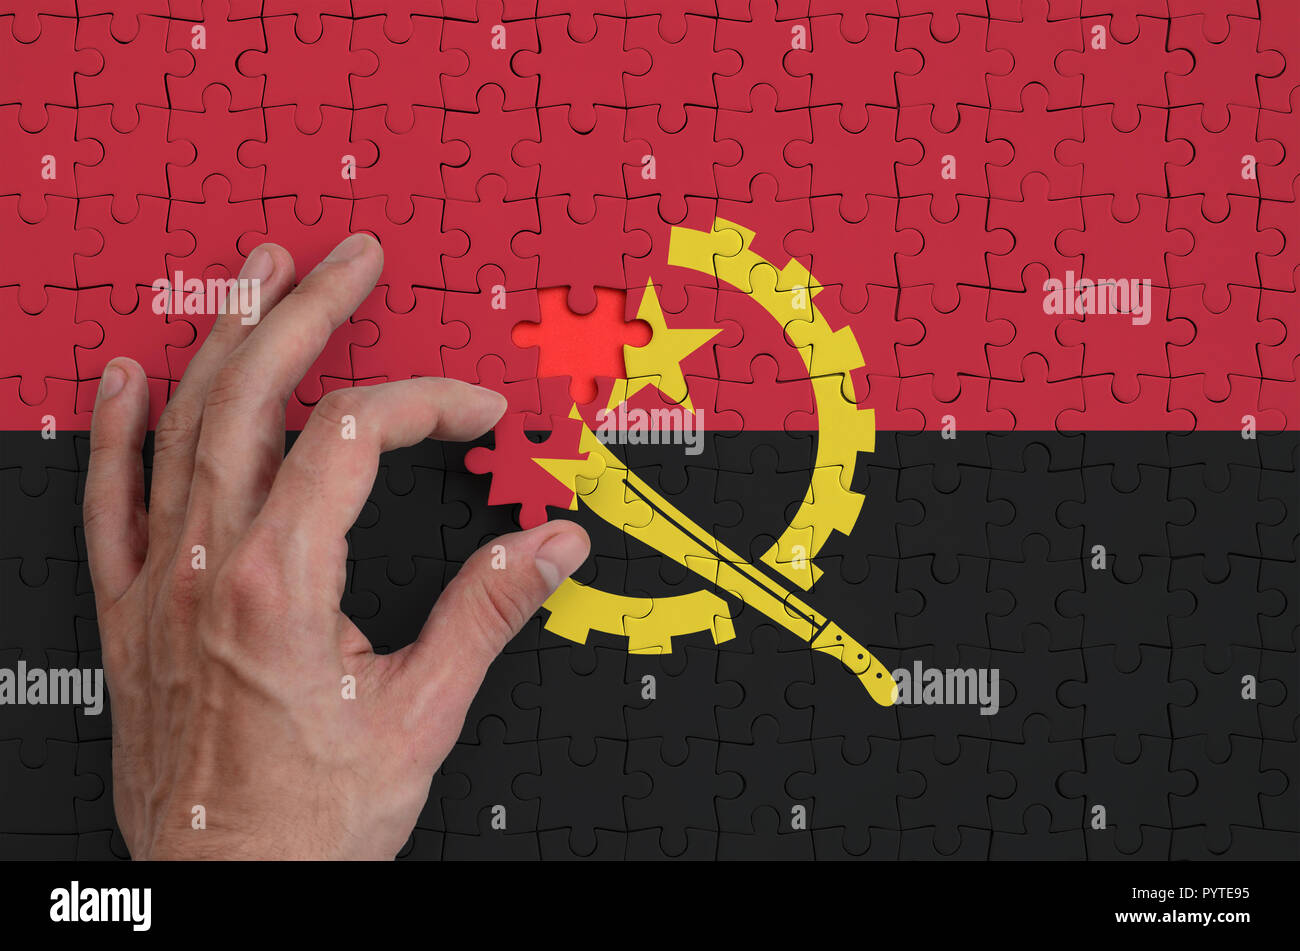 Angola flag  is depicted on a puzzle, which the man's hand completes to fold. - Stock Image